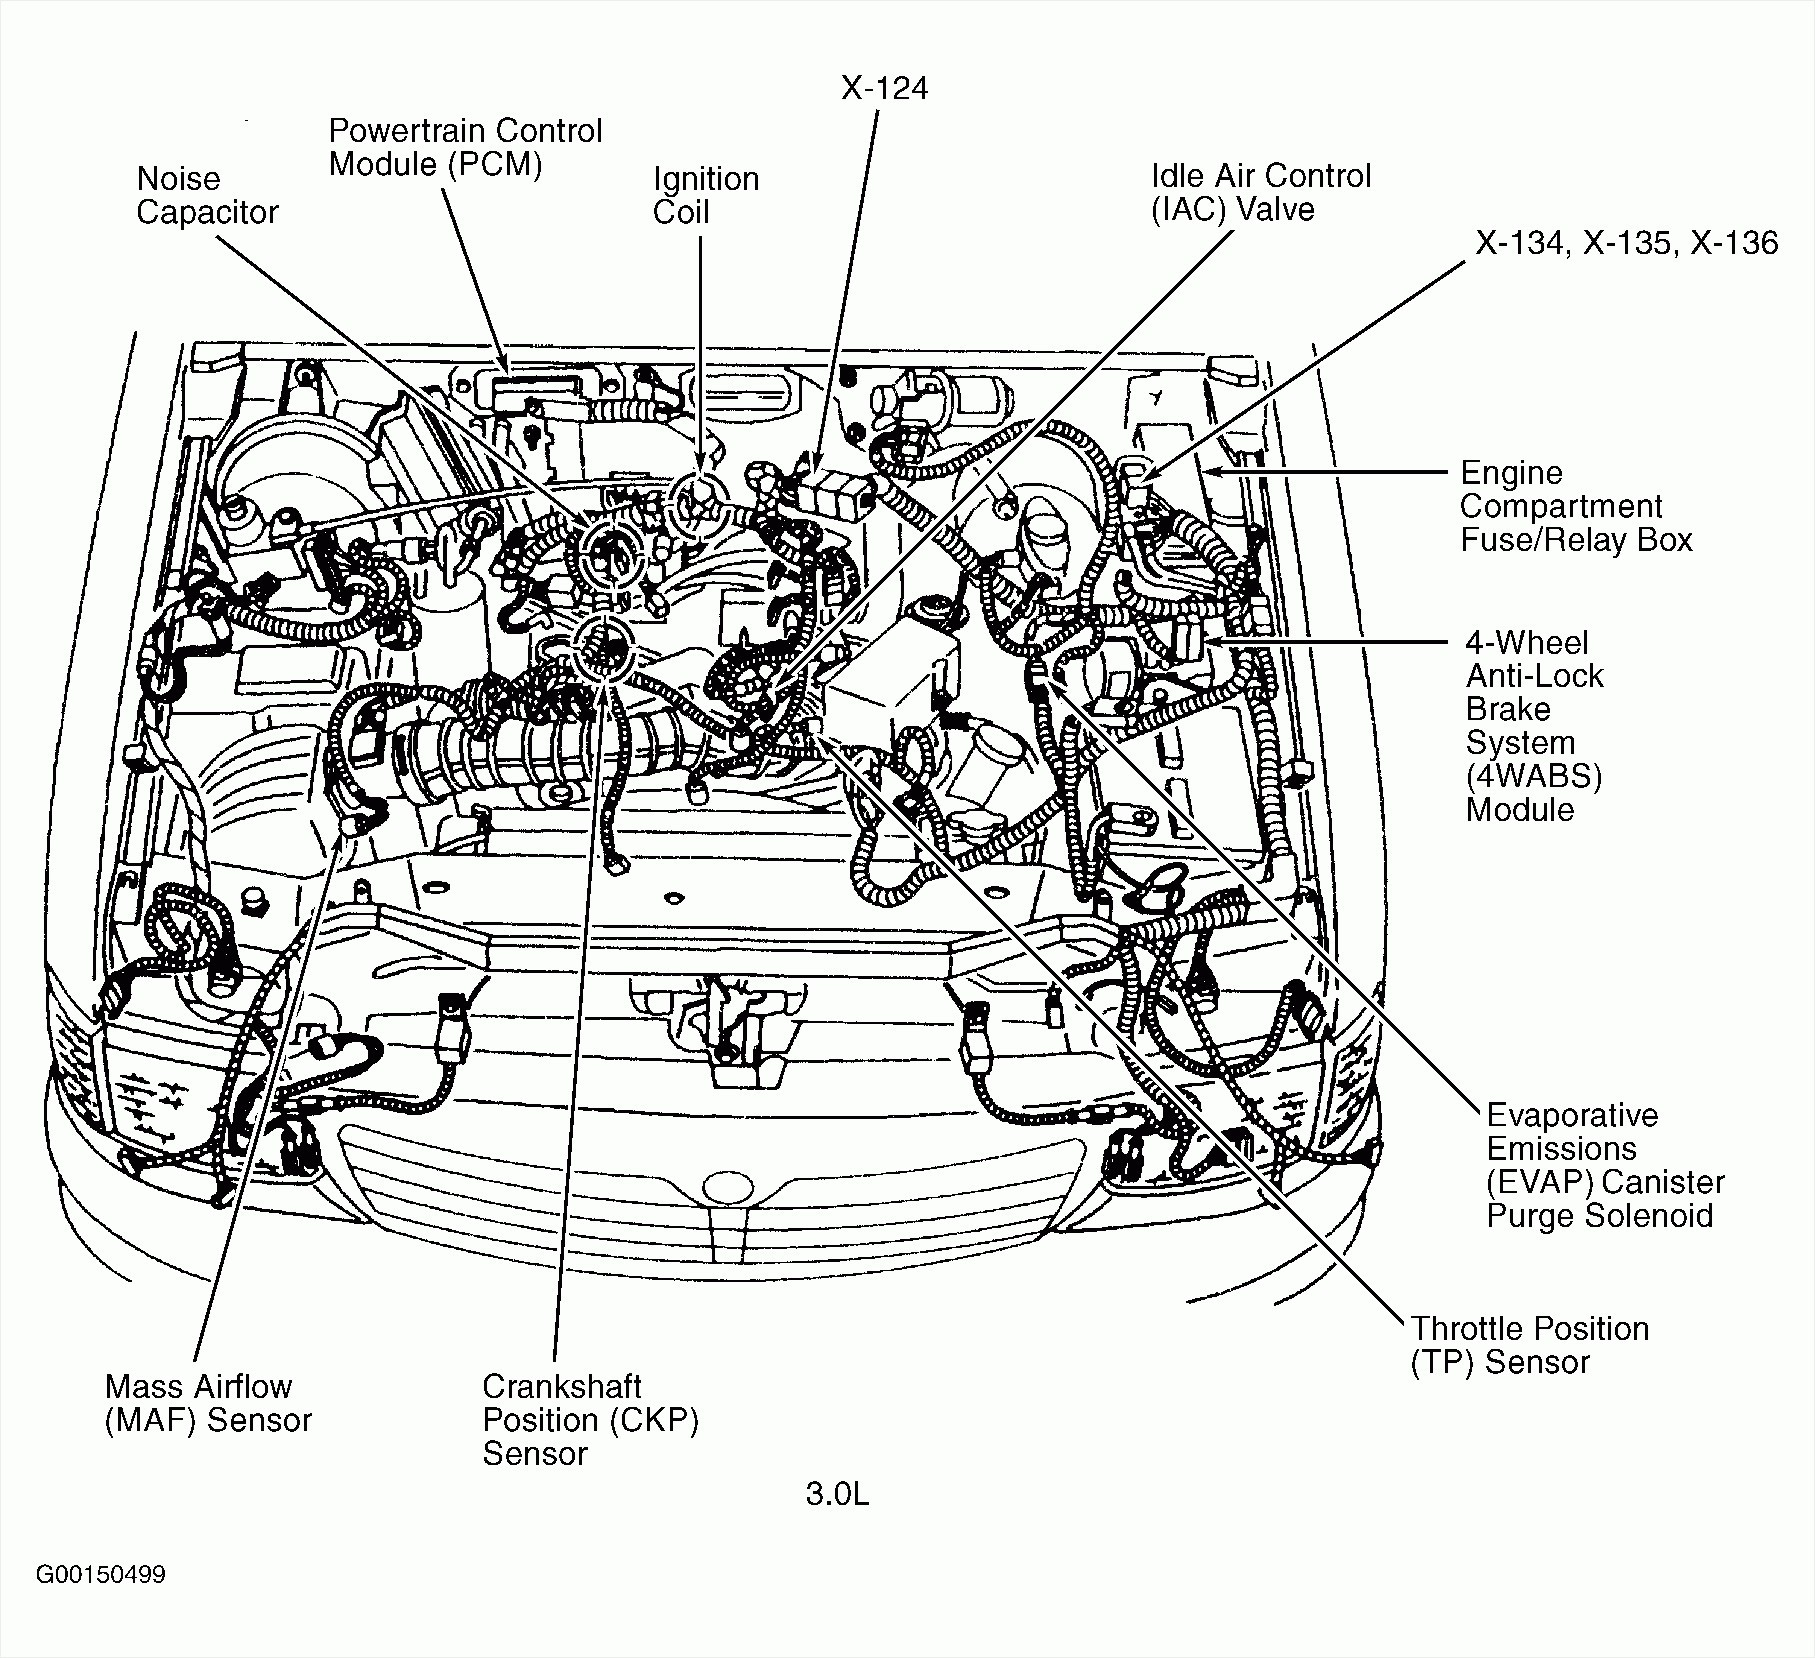 hight resolution of 1987 corvette engine diagram wiring diagram database 2000 corvette engine diagram